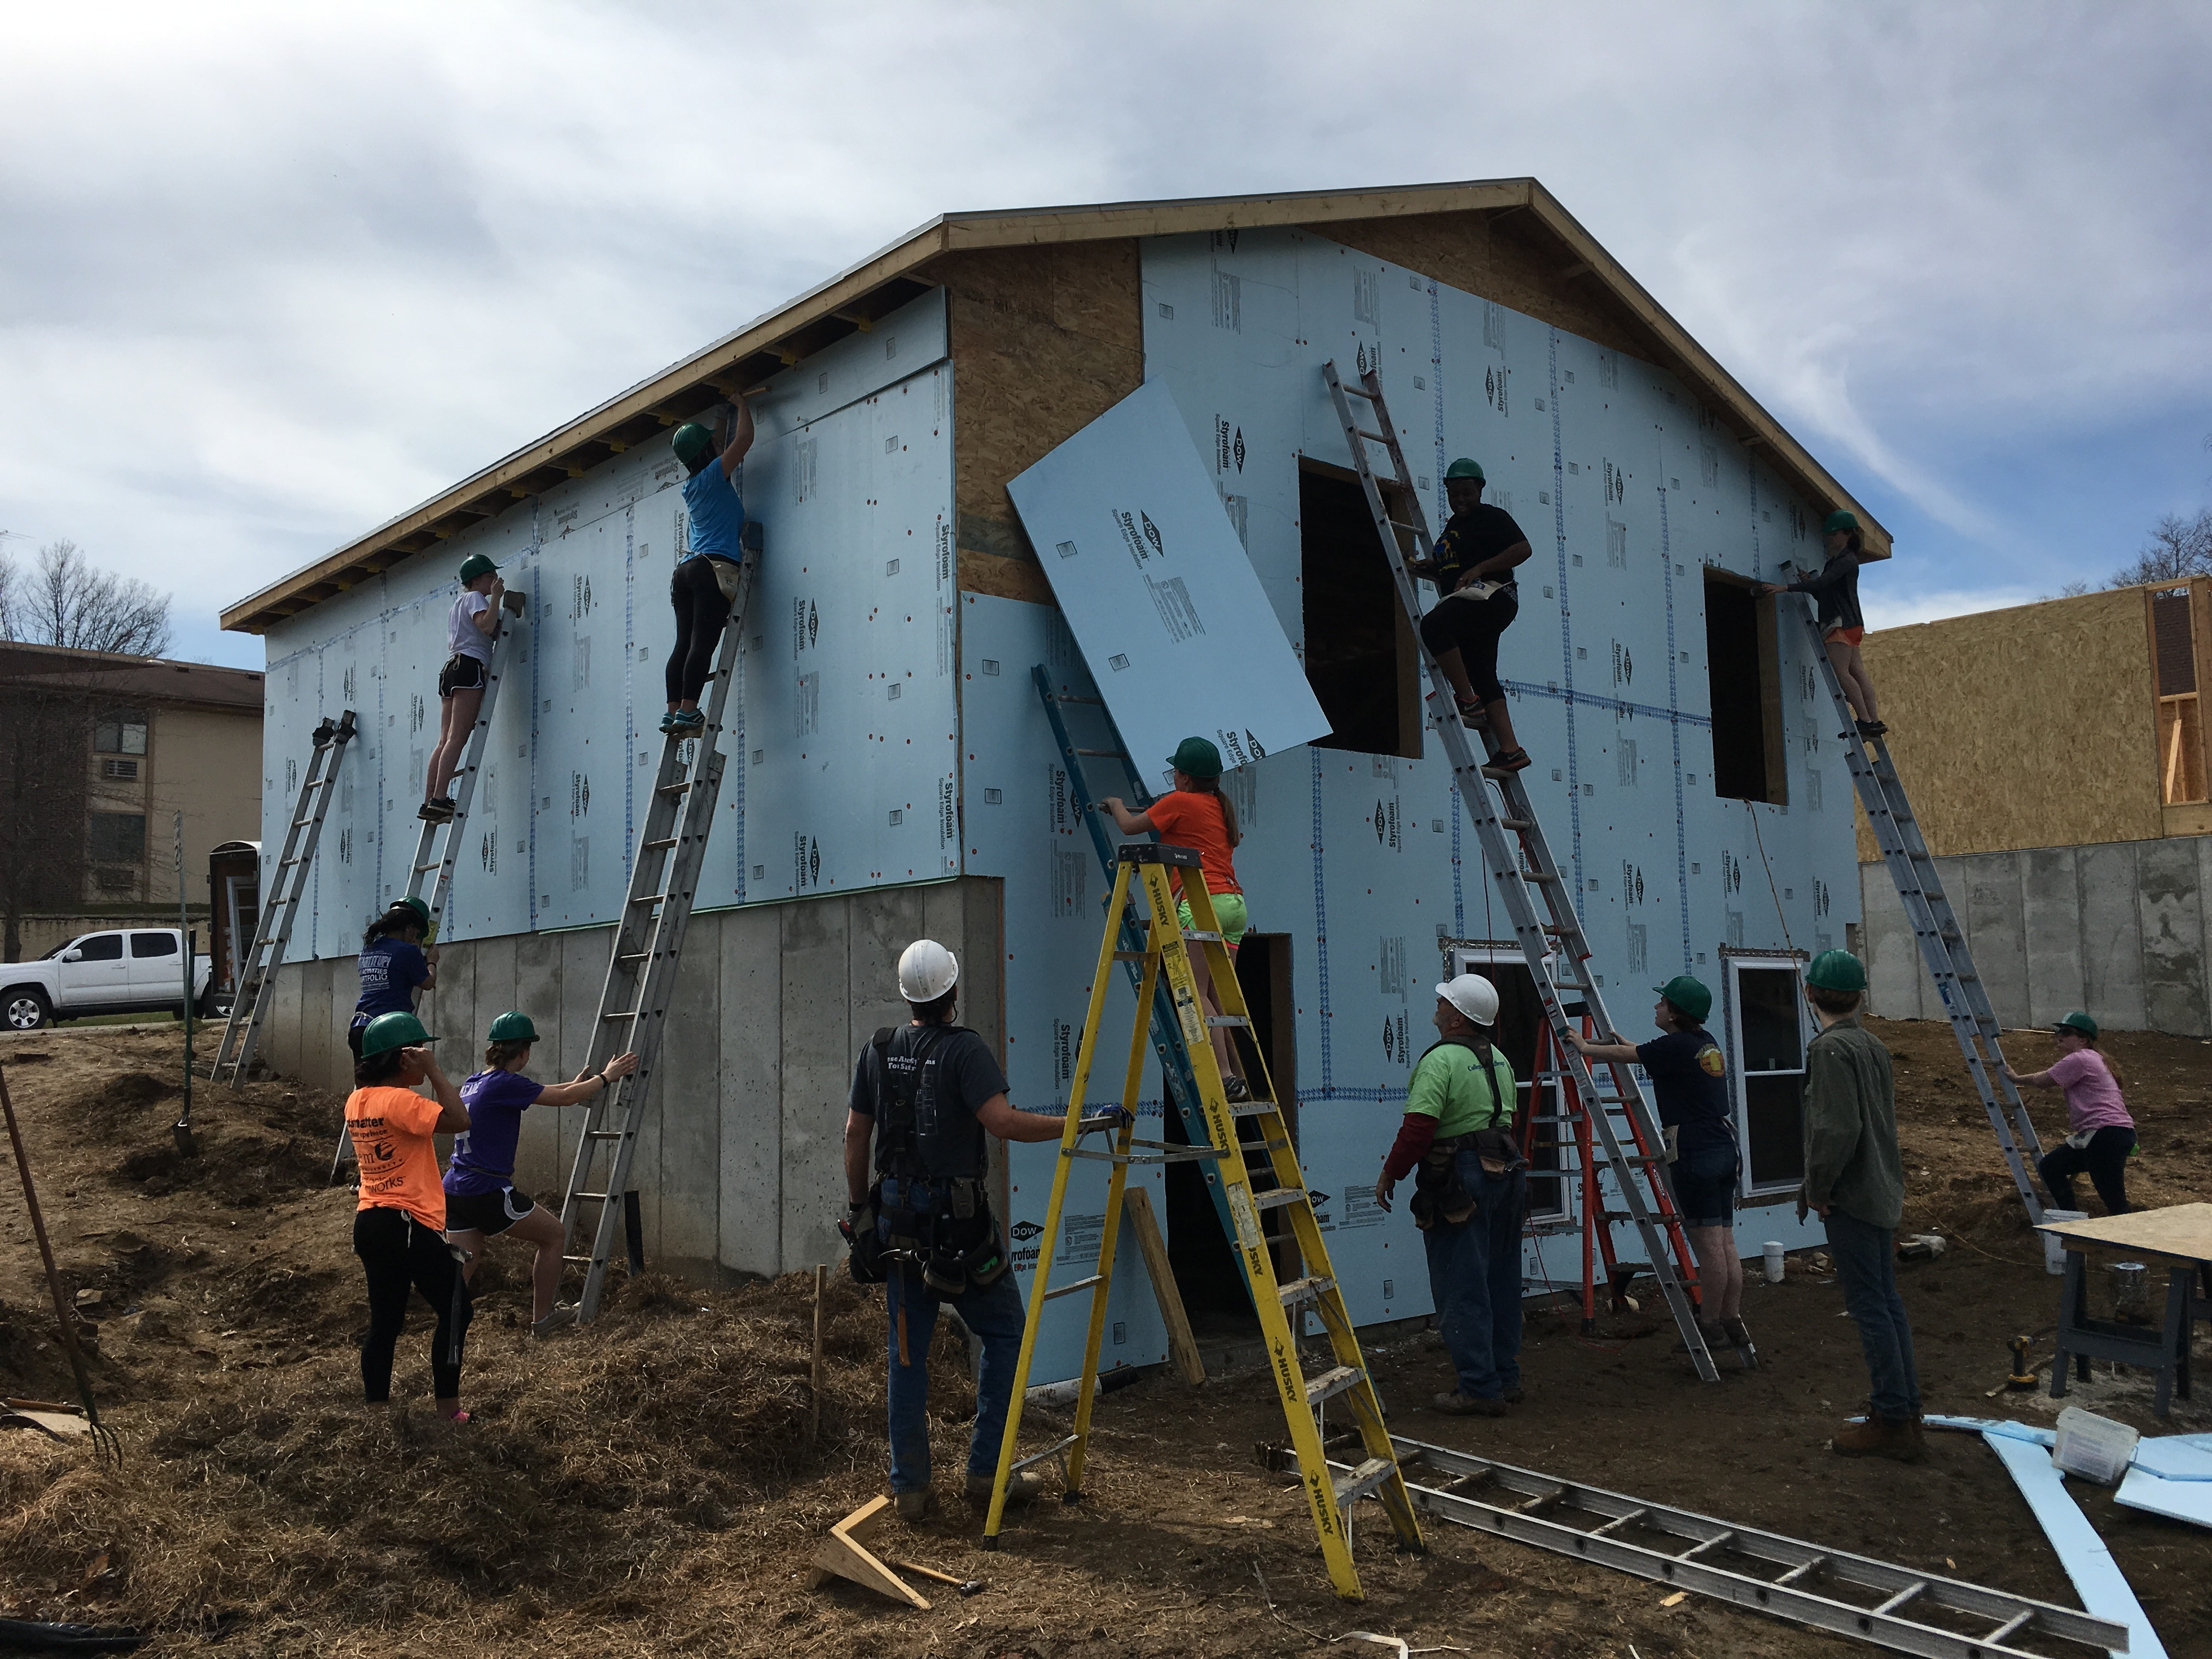 Community Service Initiative students building a home in Missouri with Habitat